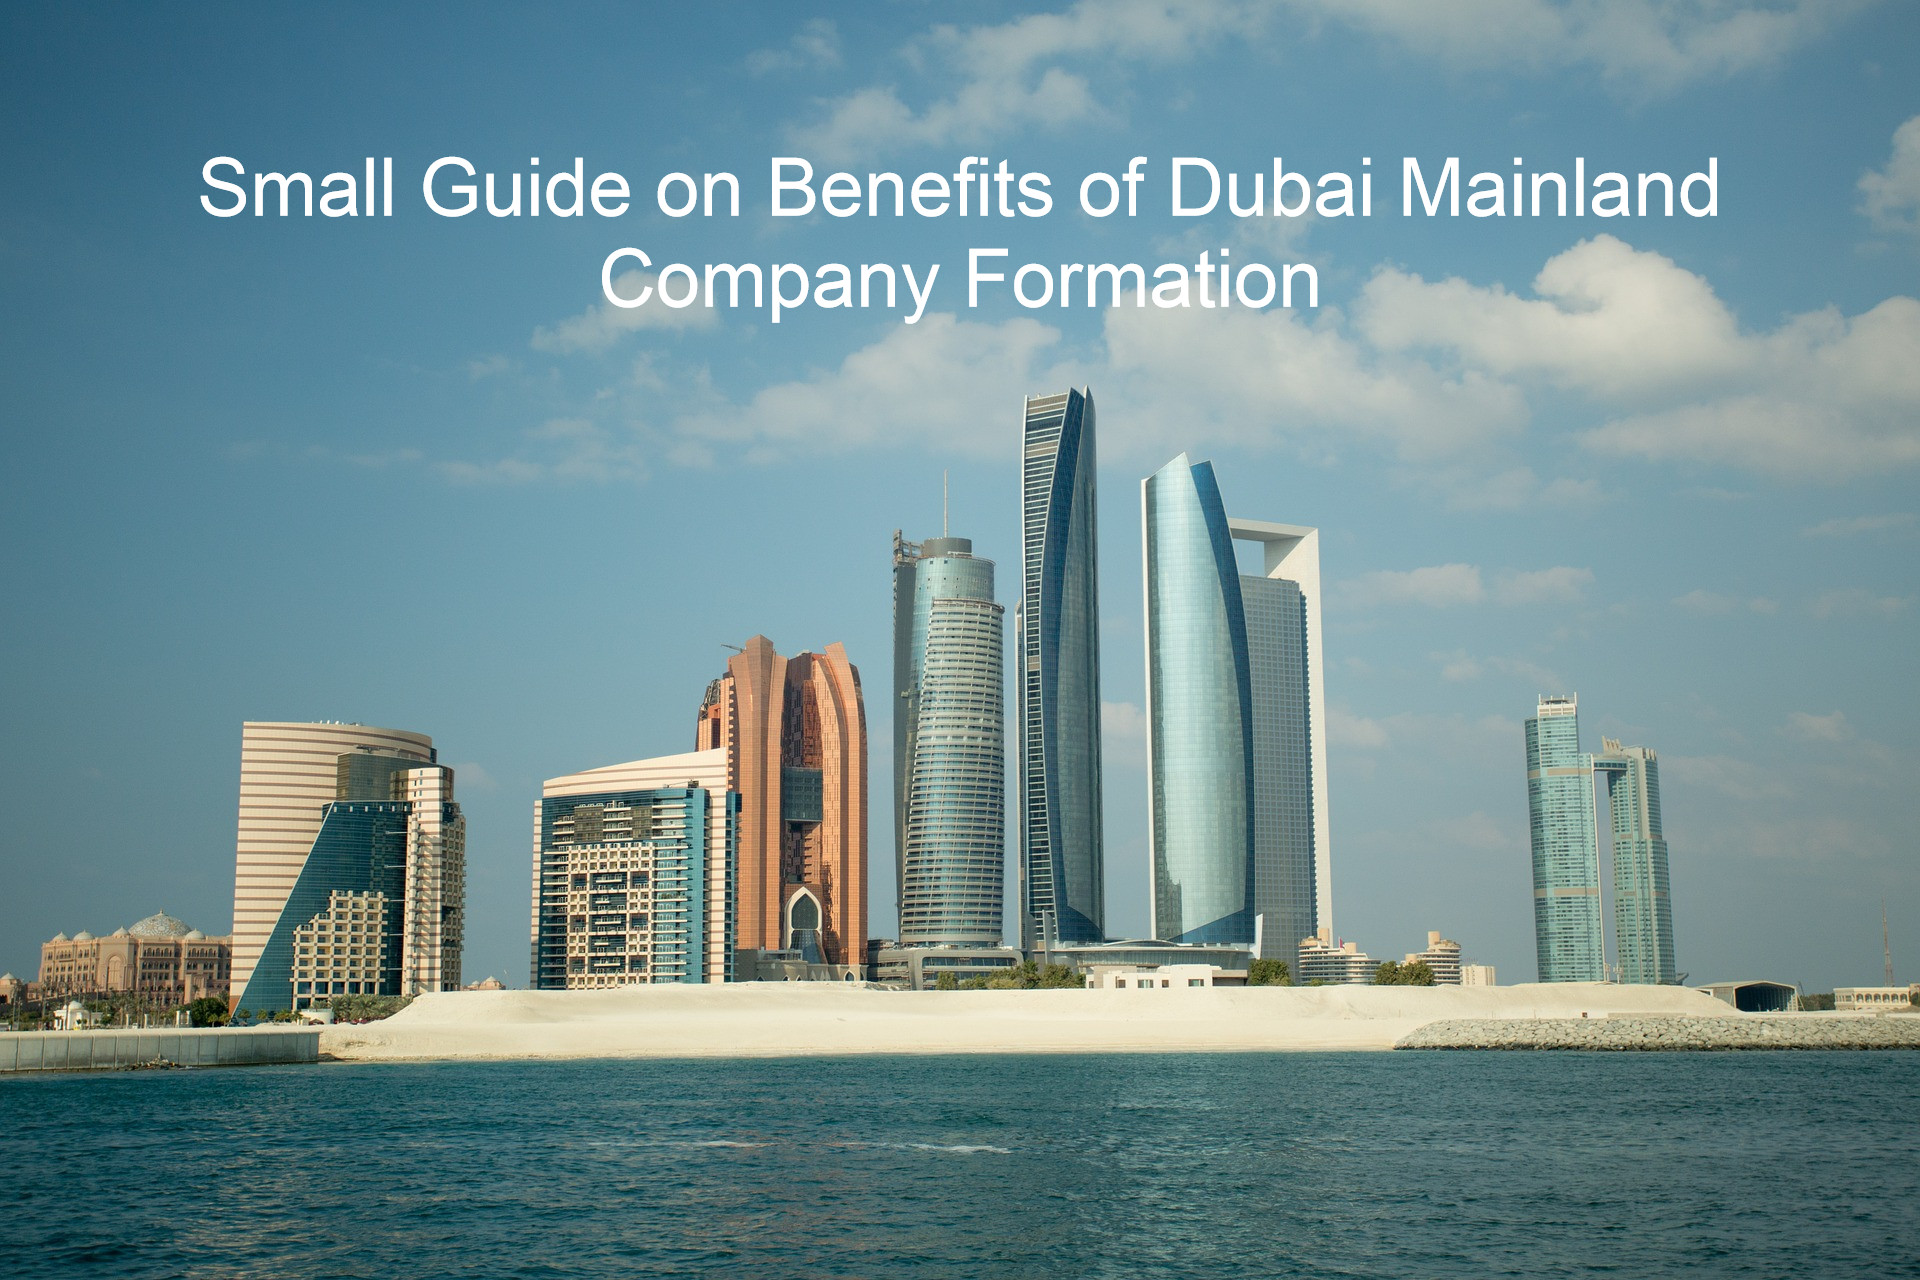 Small Guide on Benefits of Dubai Mainland Company Formation